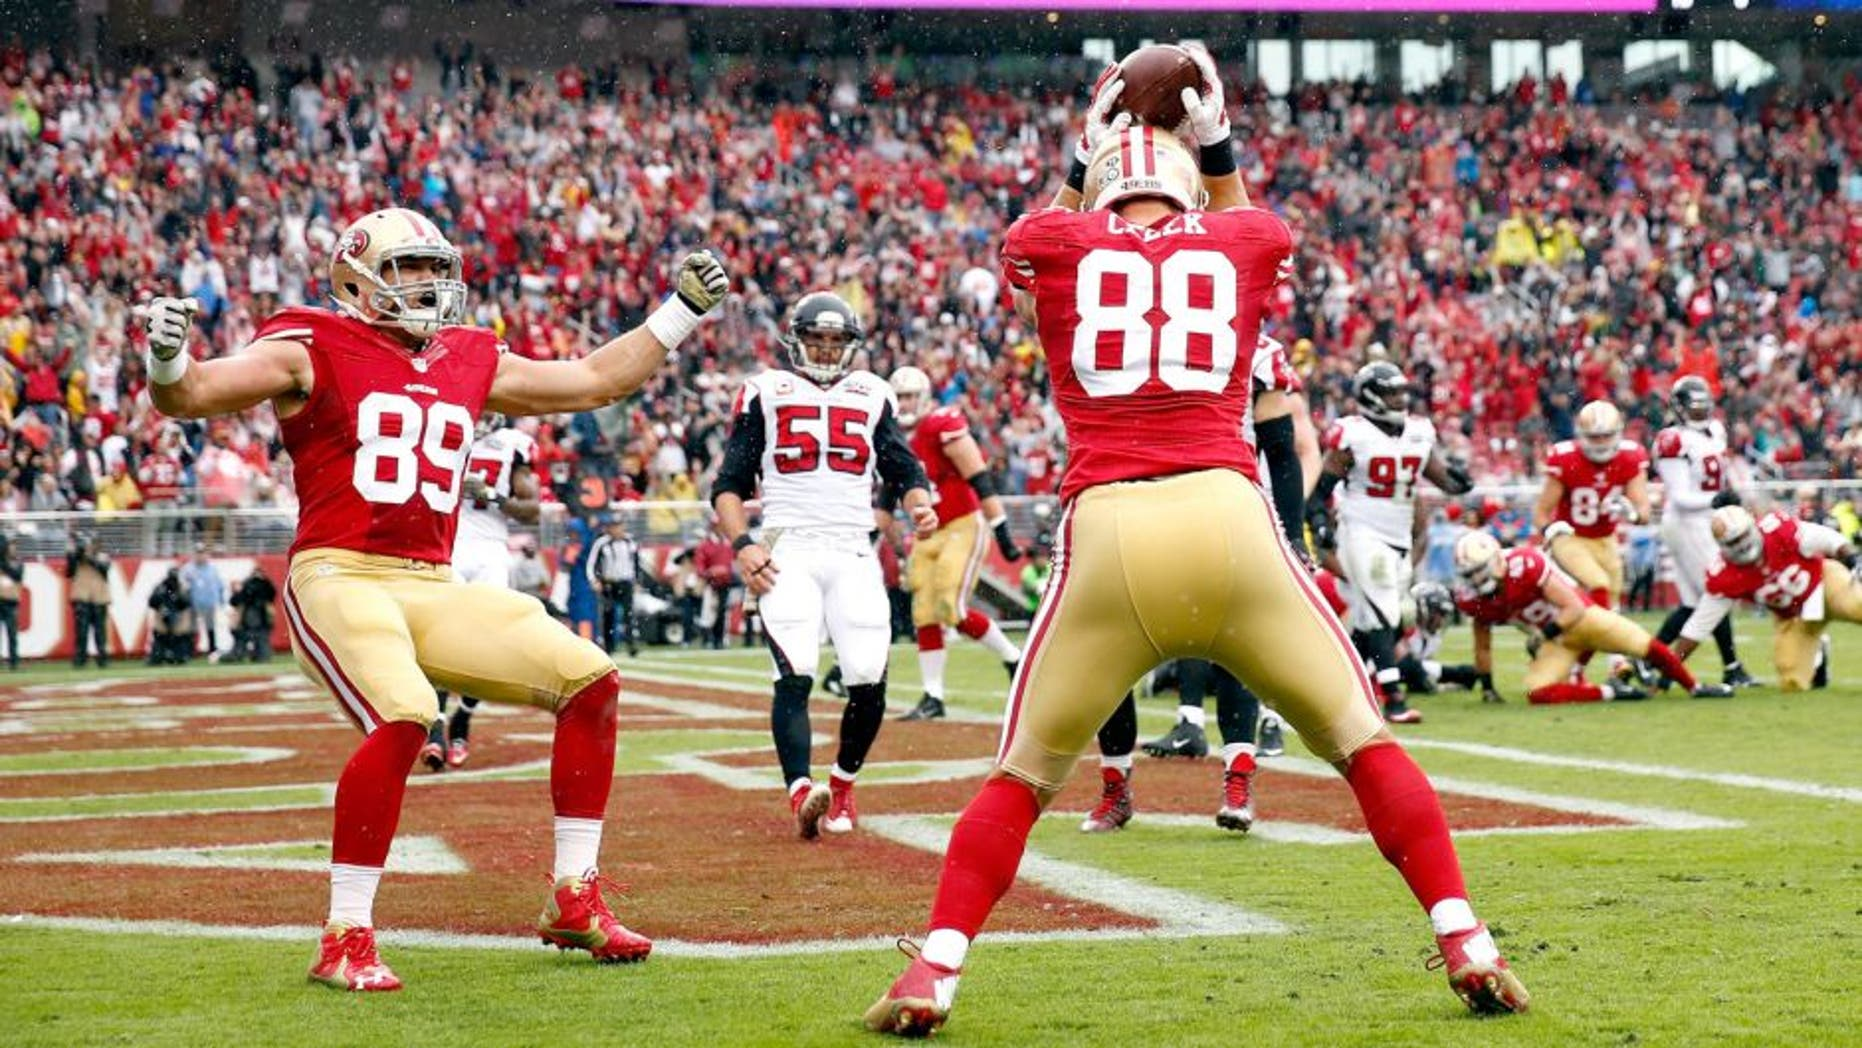 SANTA CLARA, CA - NOVEMBER 08: Vance McDonald #89 celebrates with Garrett Celek #88 of the San Francisco 49ers after Celek made a touchdown against the Atlanta Falcons at Levi's Stadium on November 8, 2015 in Santa Clara, California. (Photo by Ezra Shaw/Getty Images)